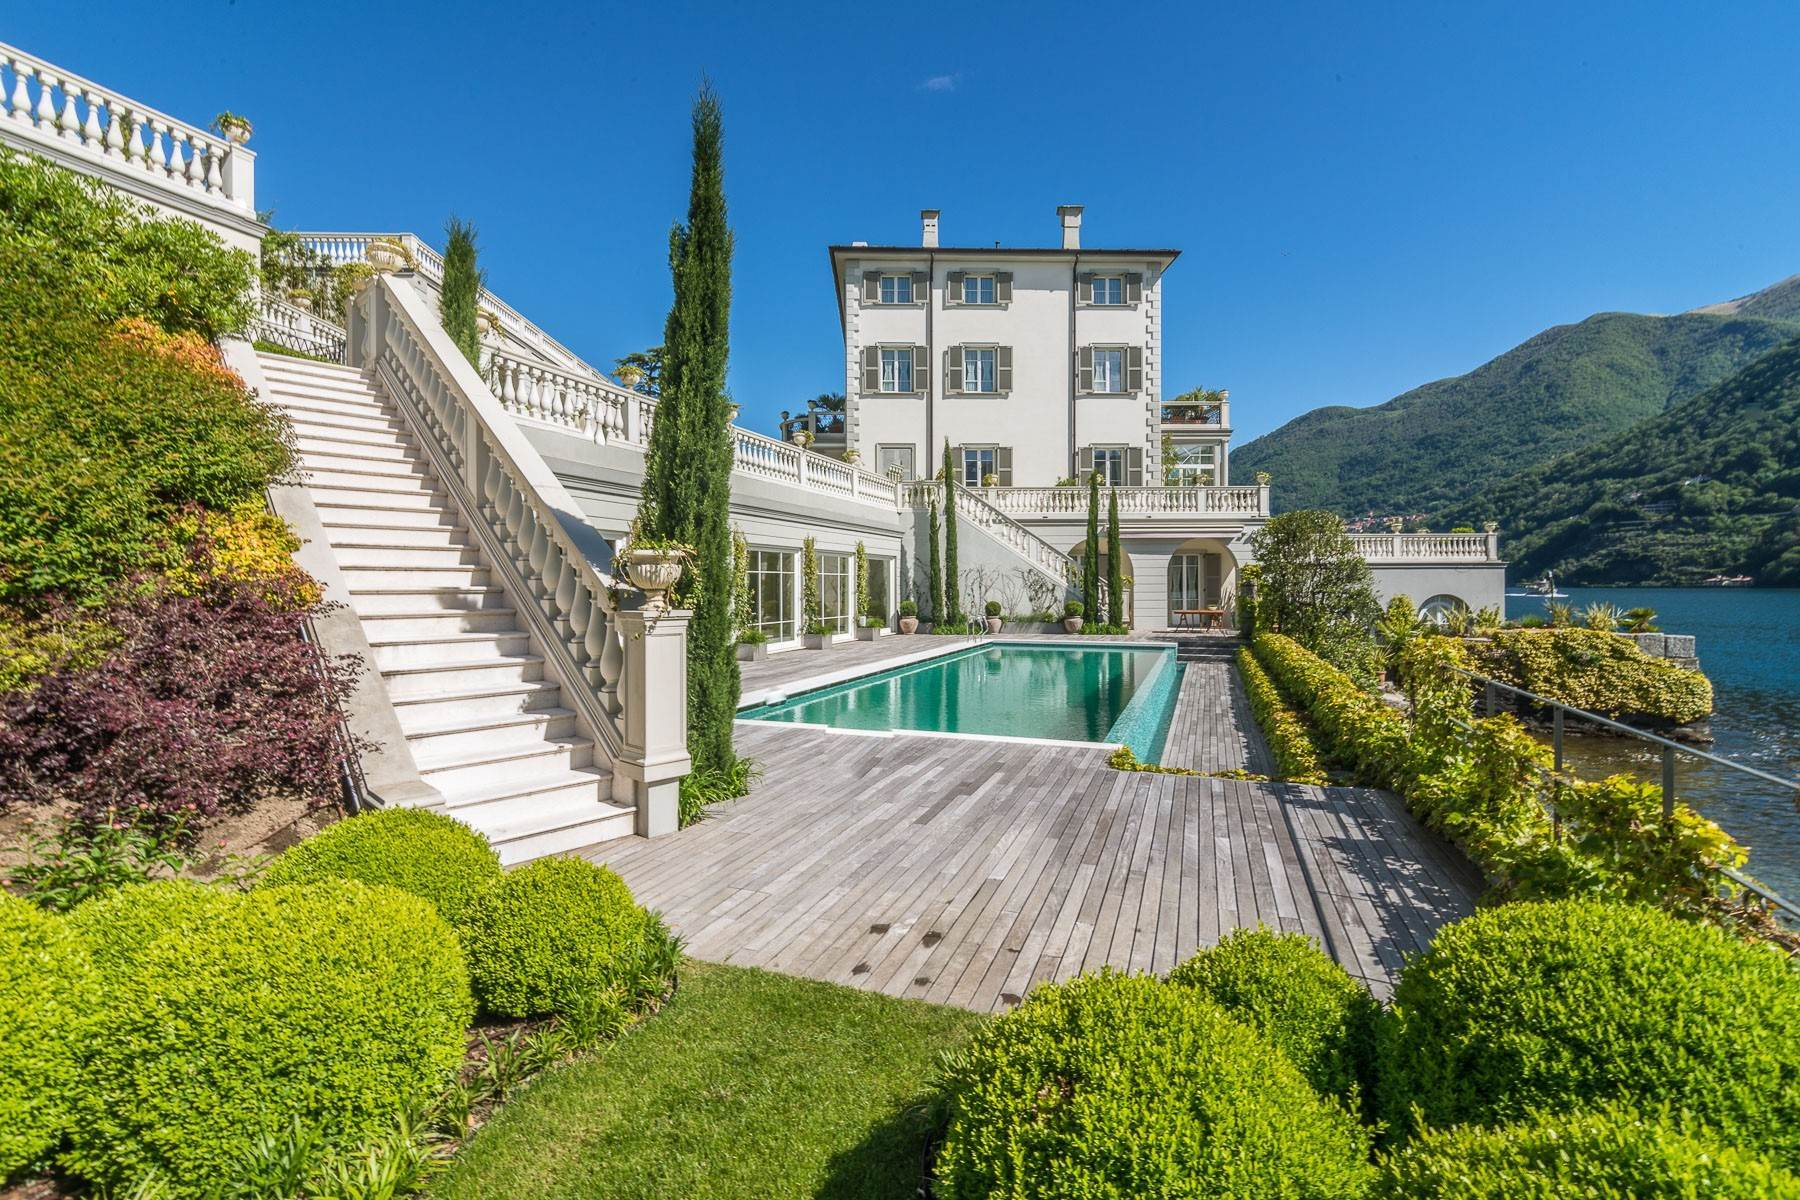 2. Other Residential Homes at Laglio, Como, Italy